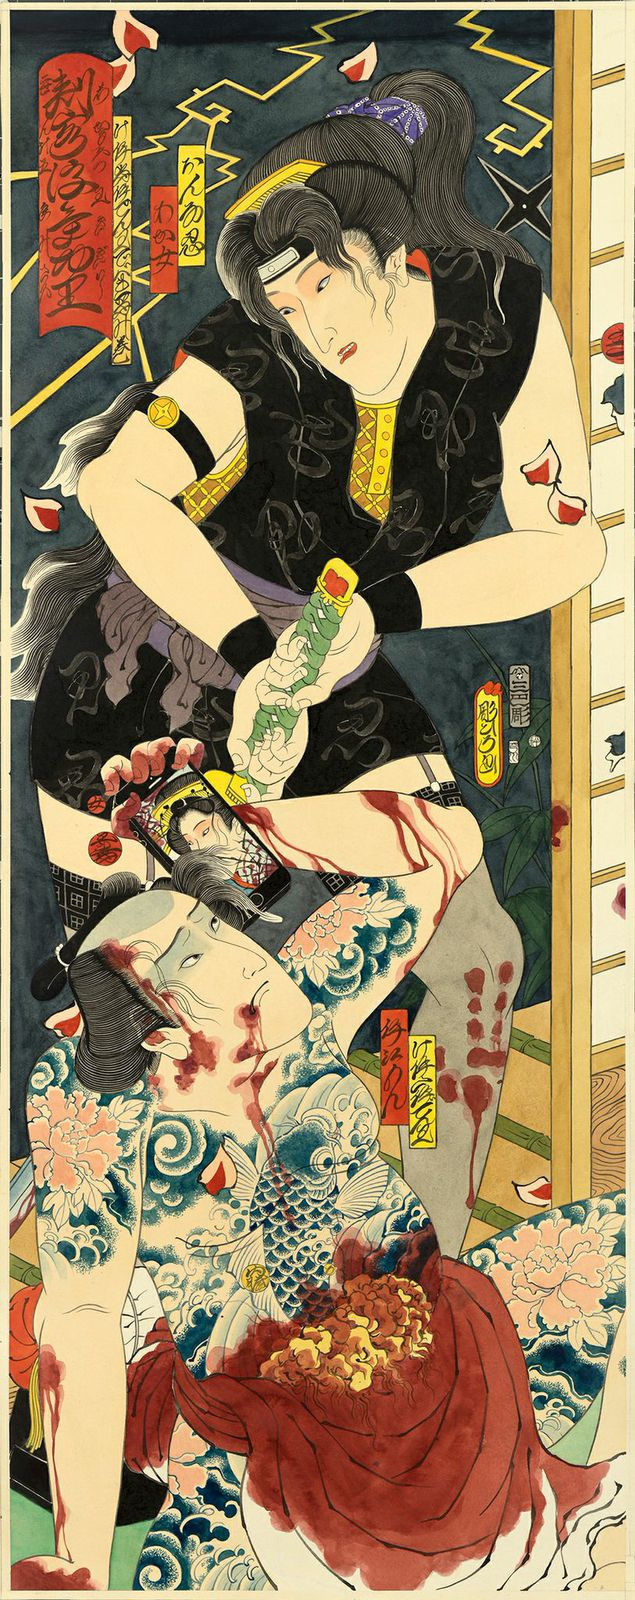 """Shikaku Uakigiri"" (Assassins Revenge) 13.5 in x 34.5 in. Limited Edition of 10"